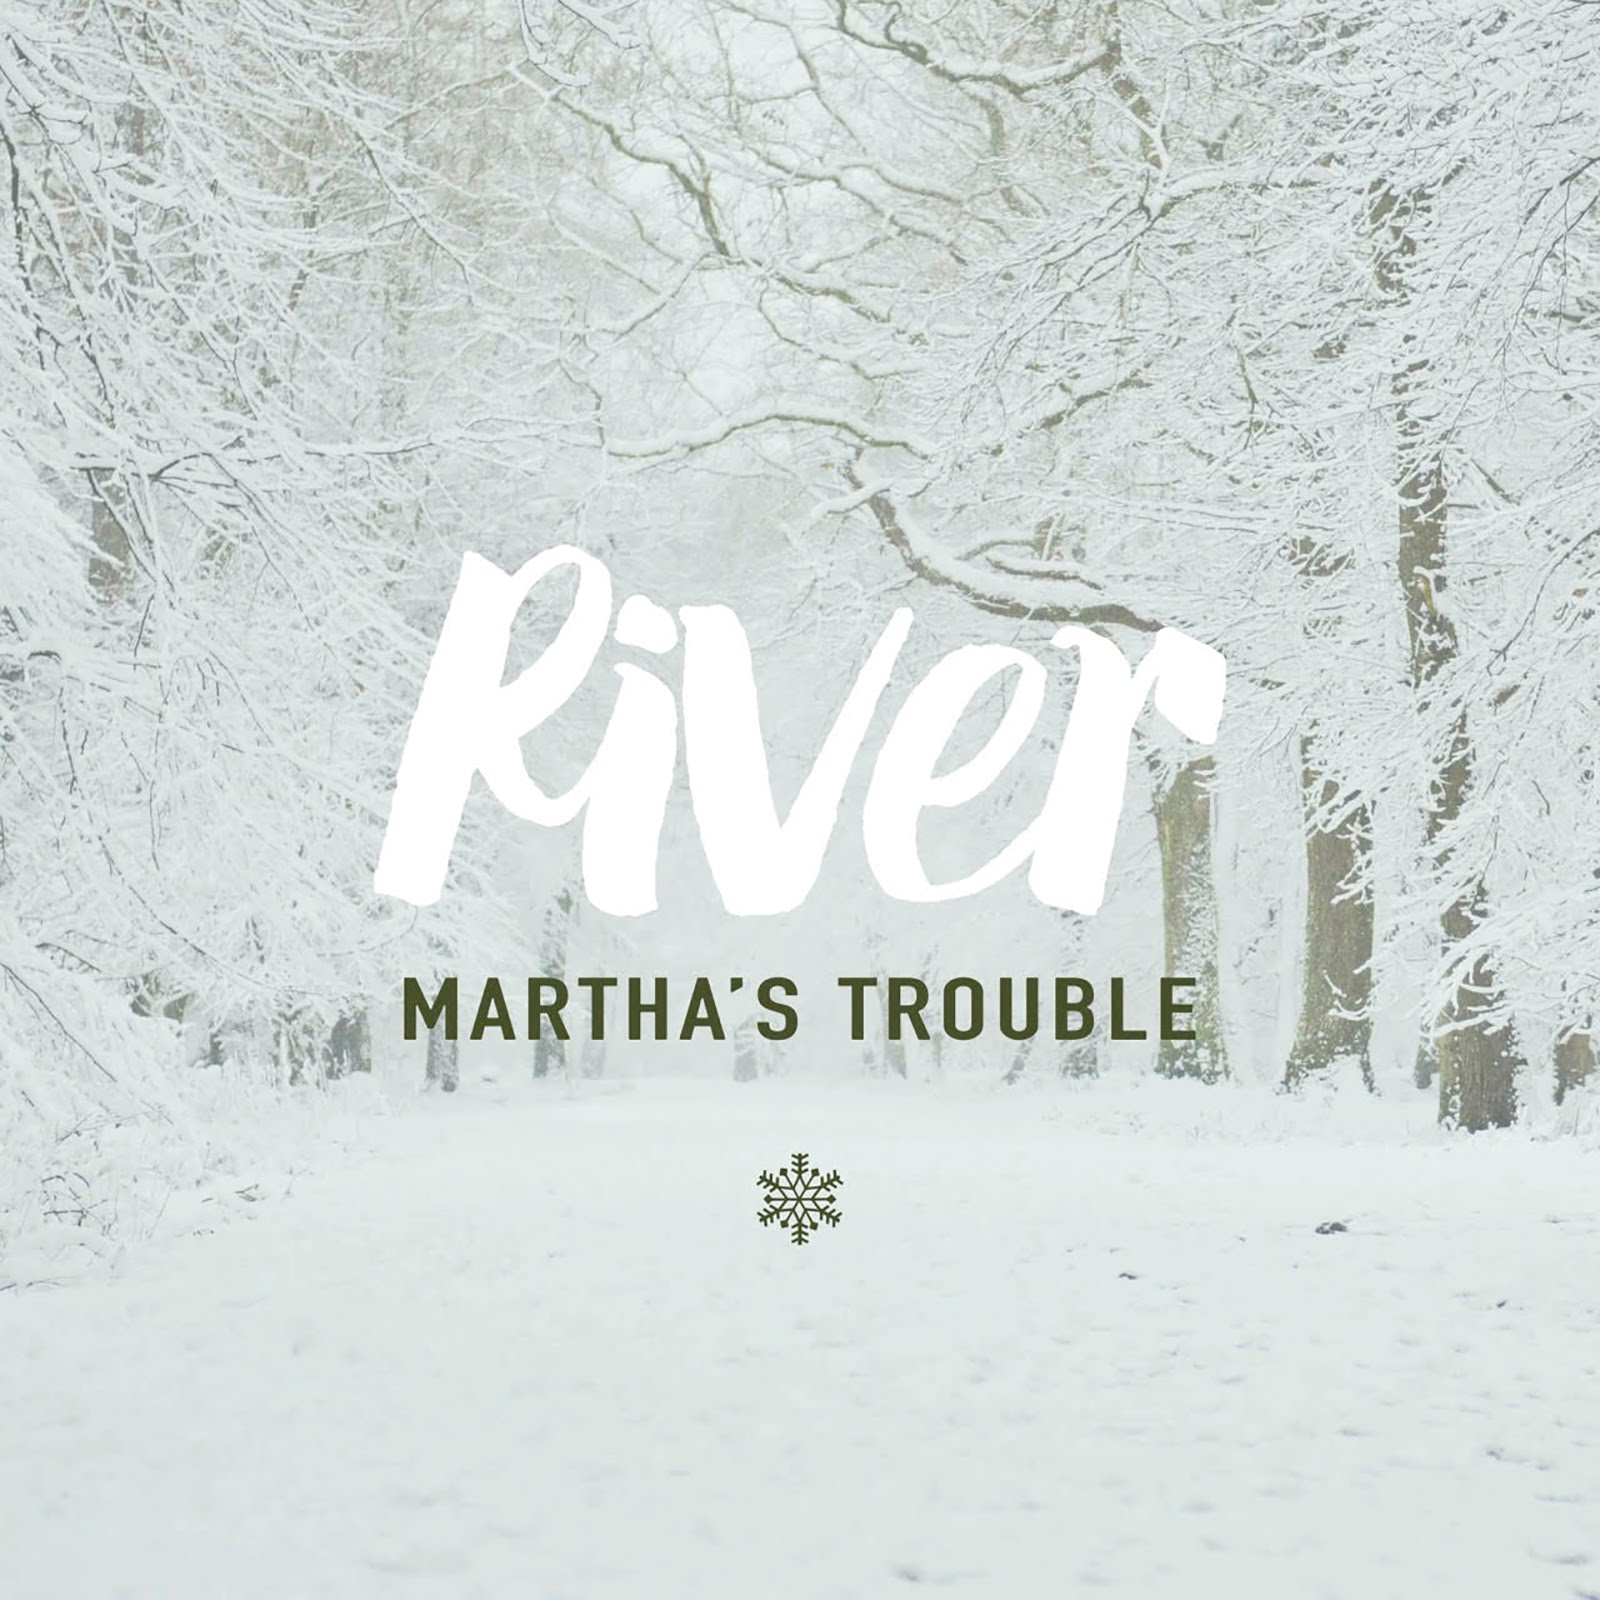 Exclusive interview and premiere with Martha's Trouble